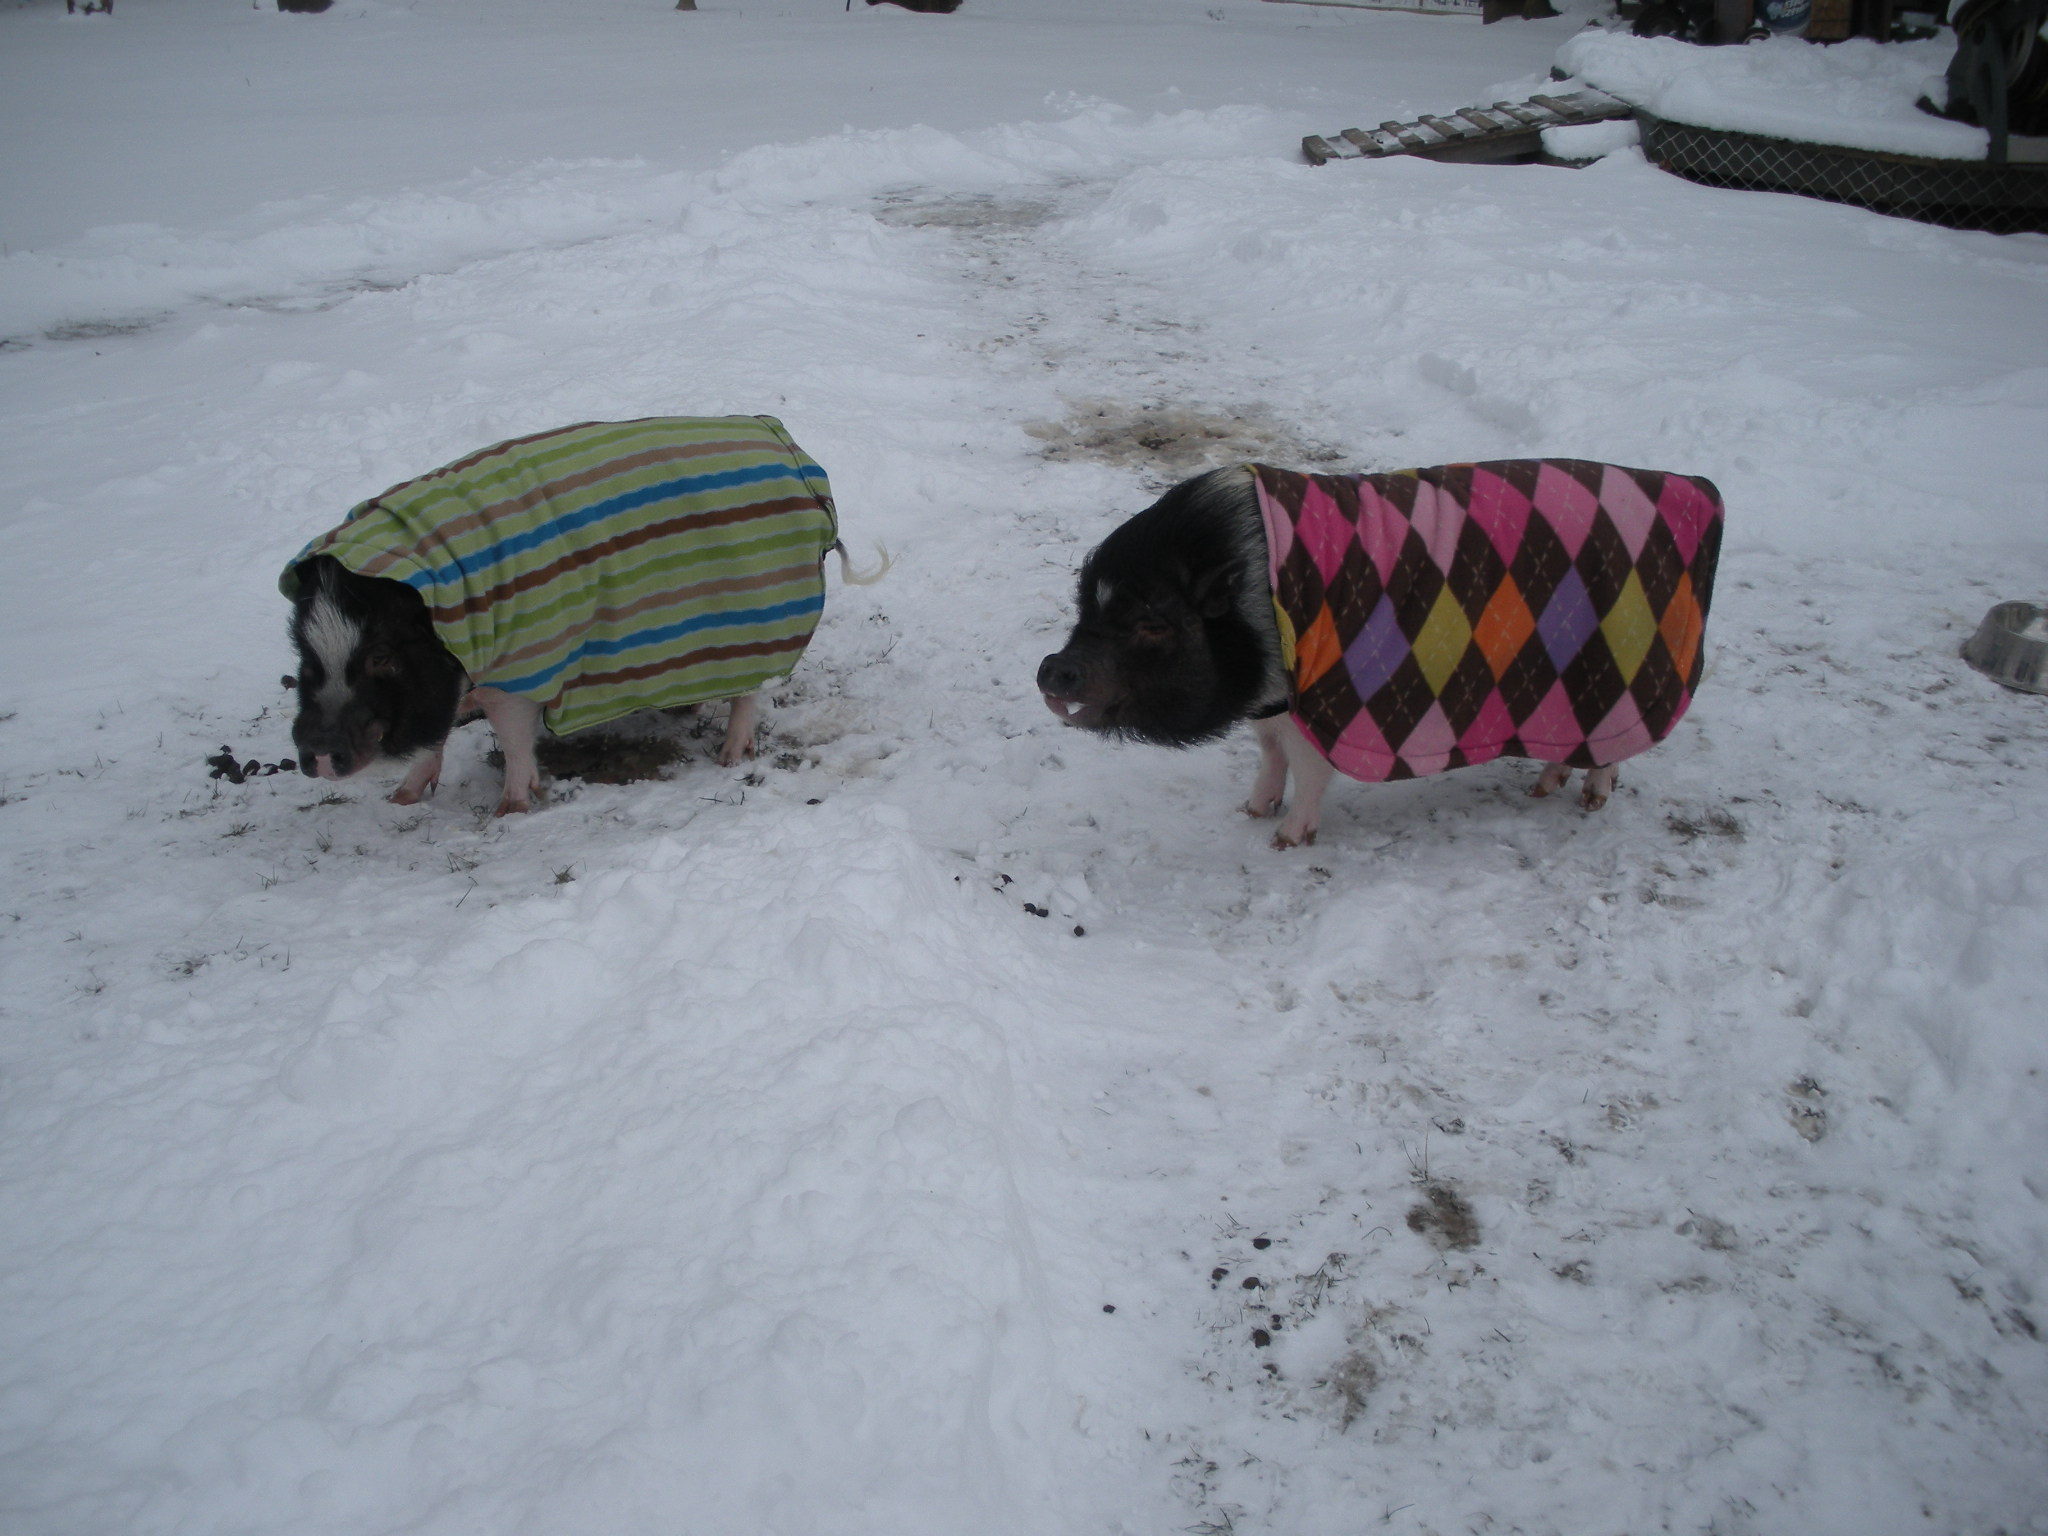 Rosco and Penny with coats